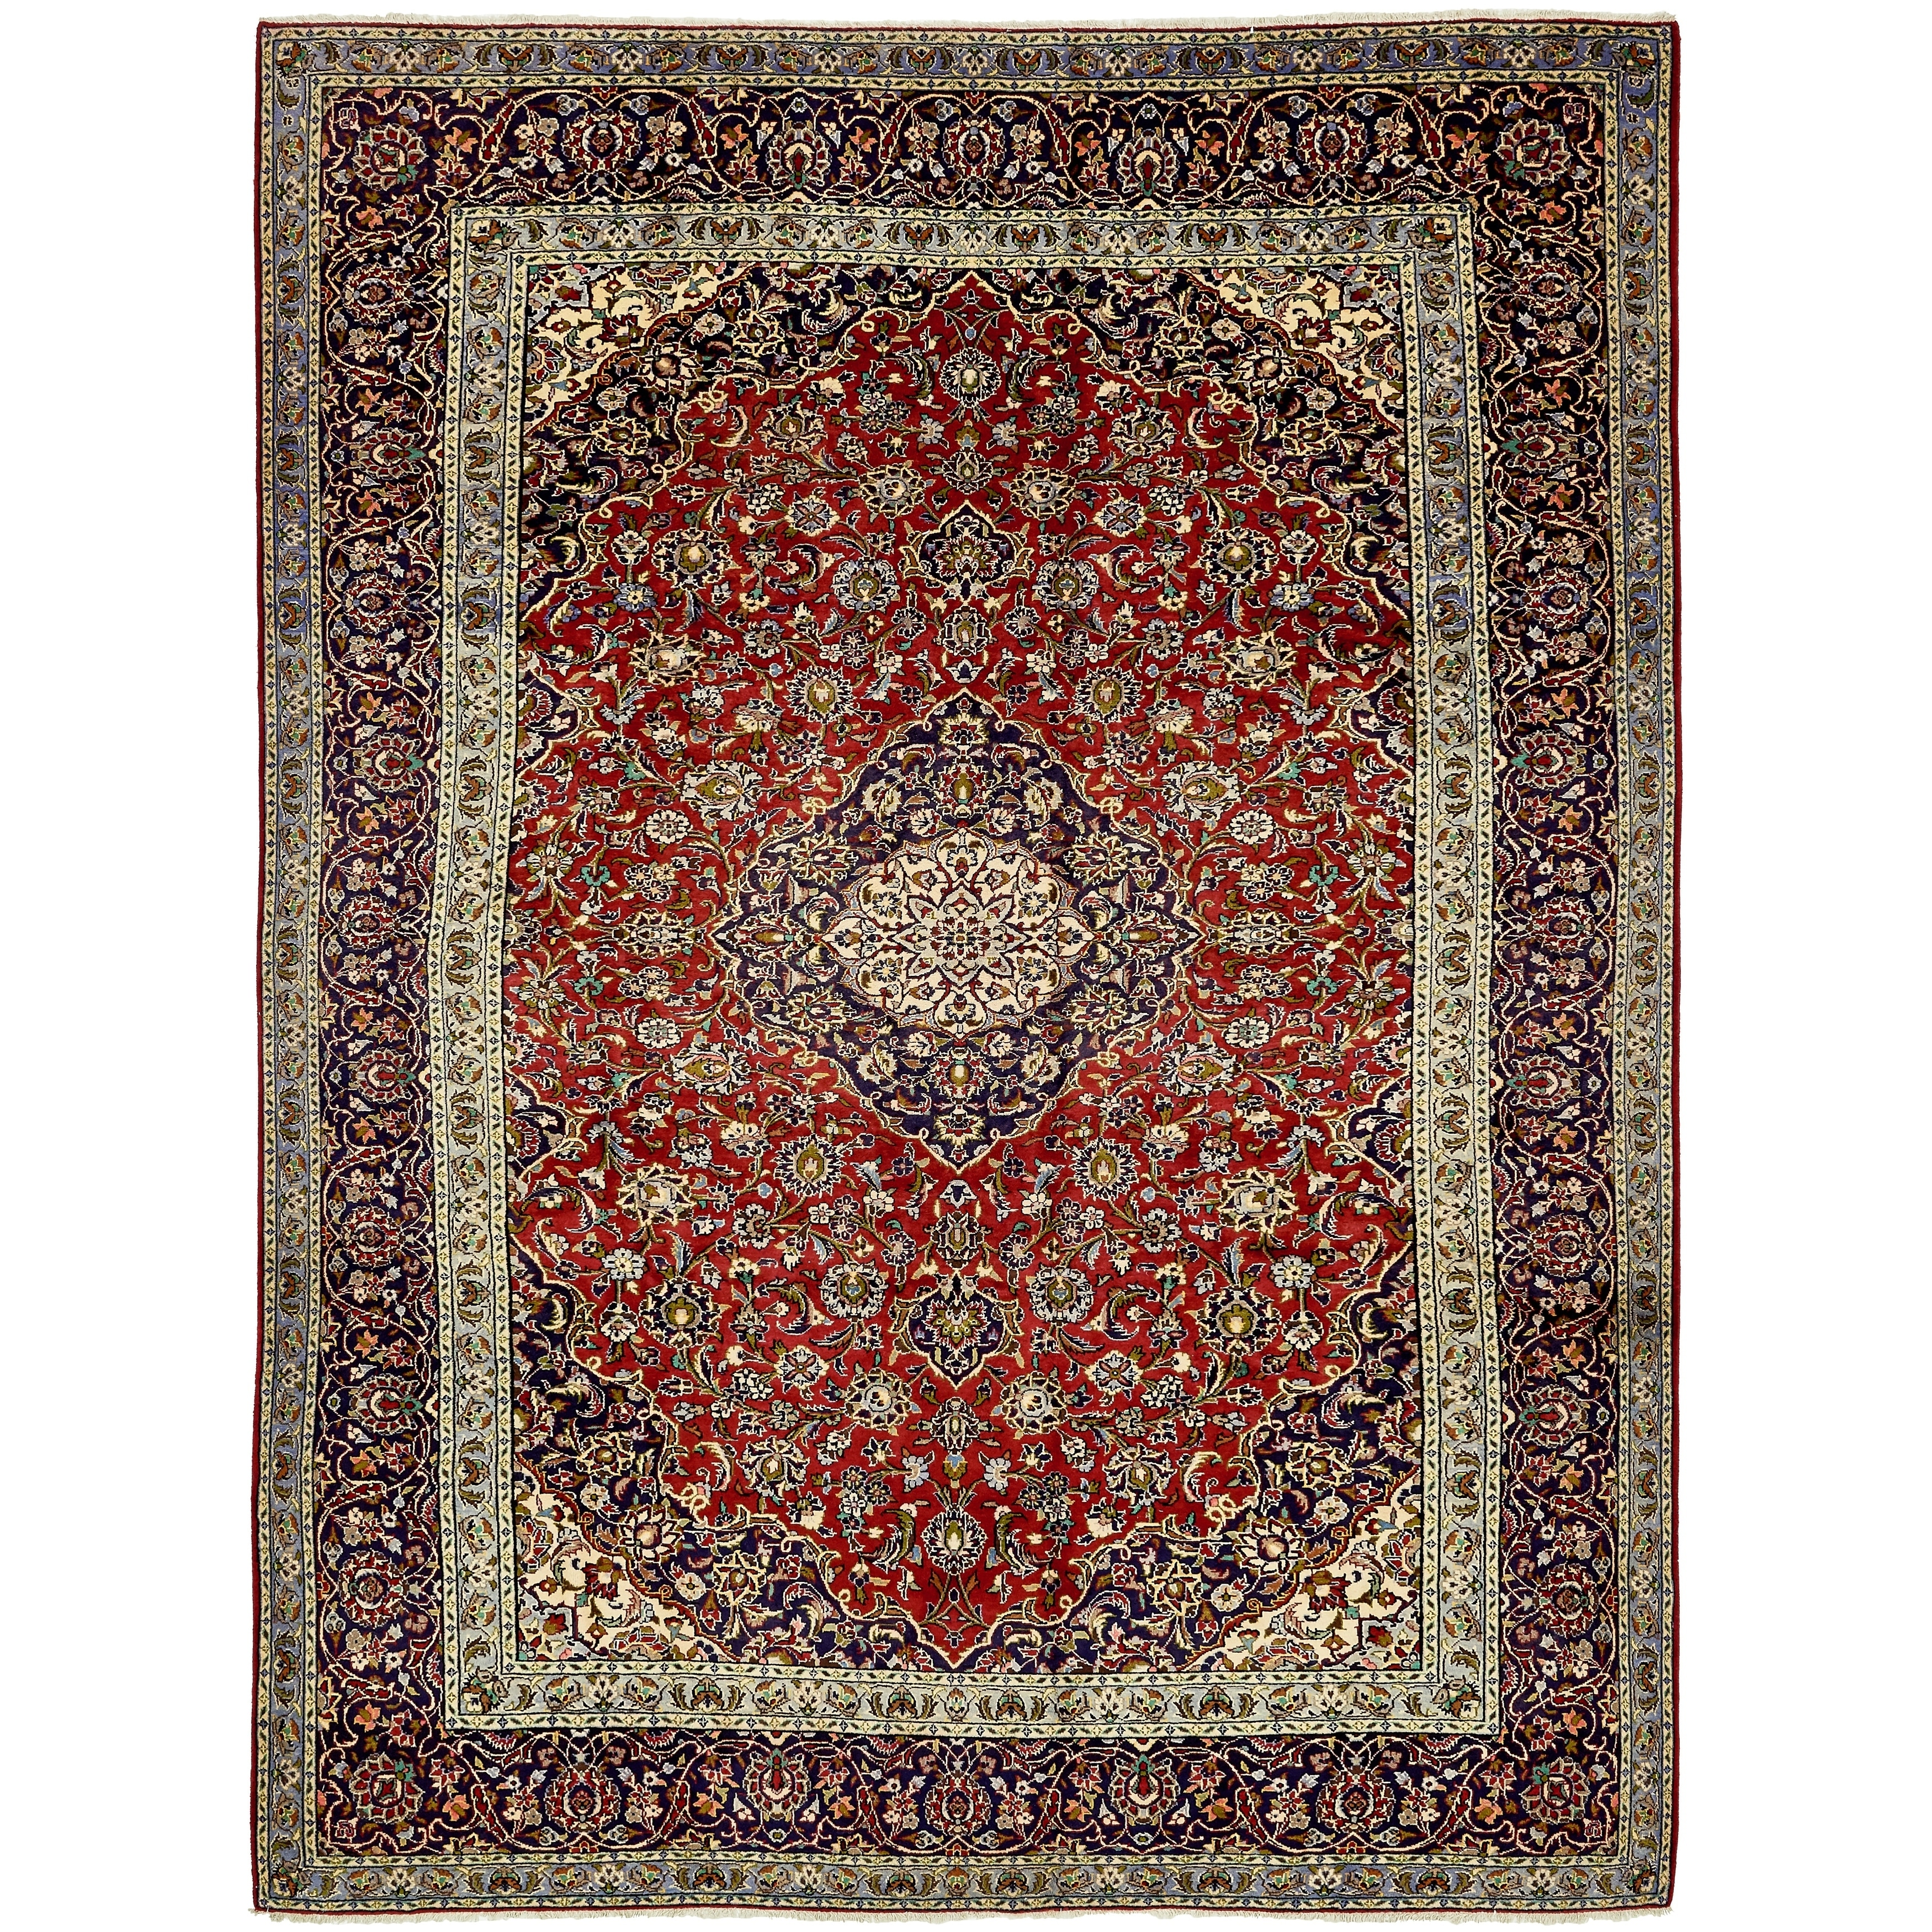 Hand Knotted Kashan Wool Area Rug - 9' 6 x 13' 1 (Red - 9' 6 x 13' 1)